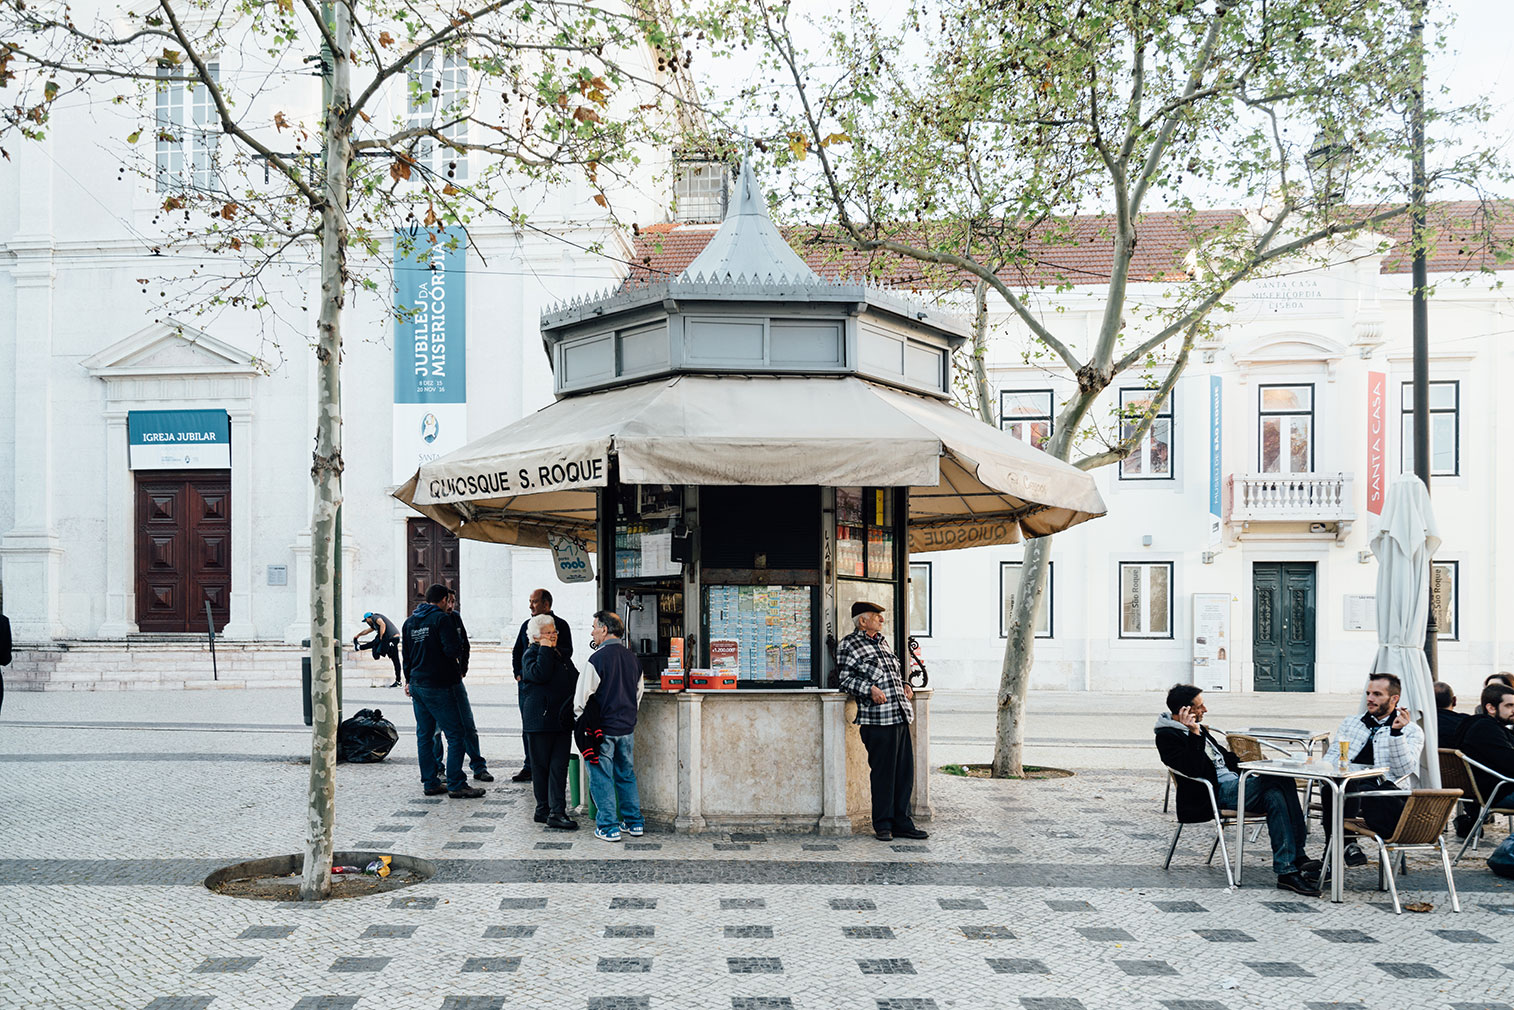 Lisbon-kiosks-richard-john-seymour-13